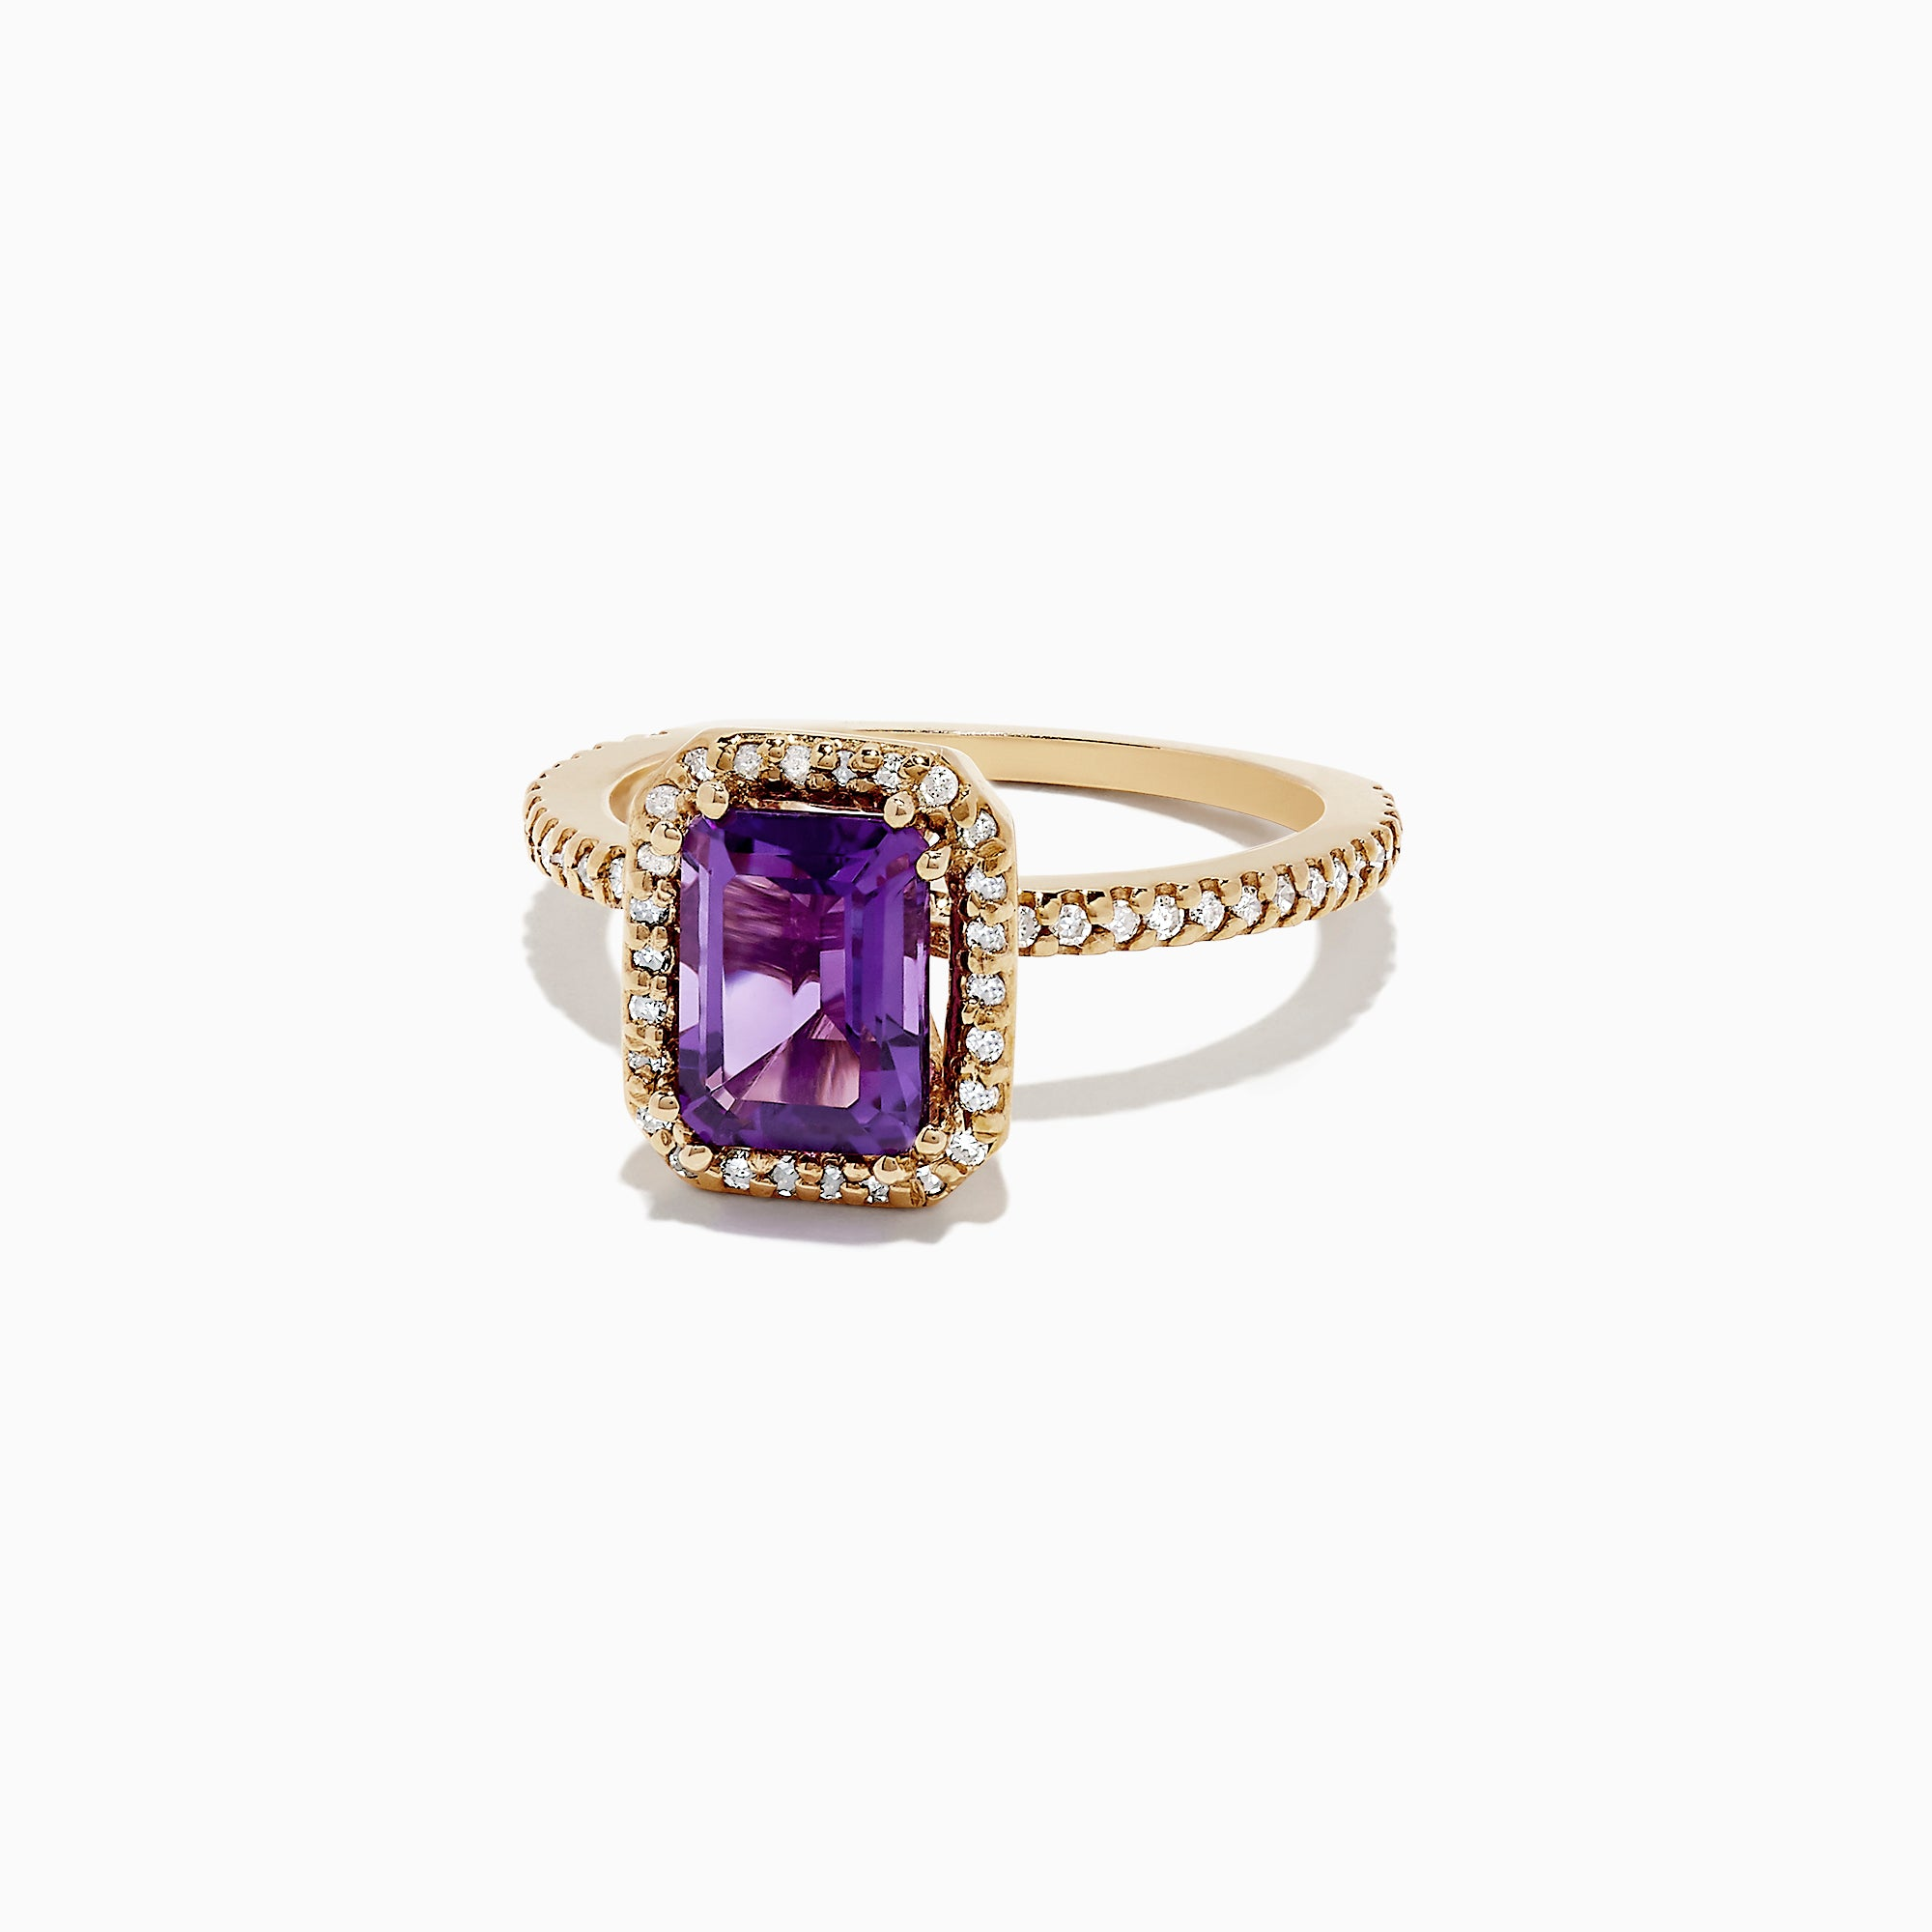 Effy 14K Yellow Gold Amethyst and Diamond Ring, 1.68 TCW